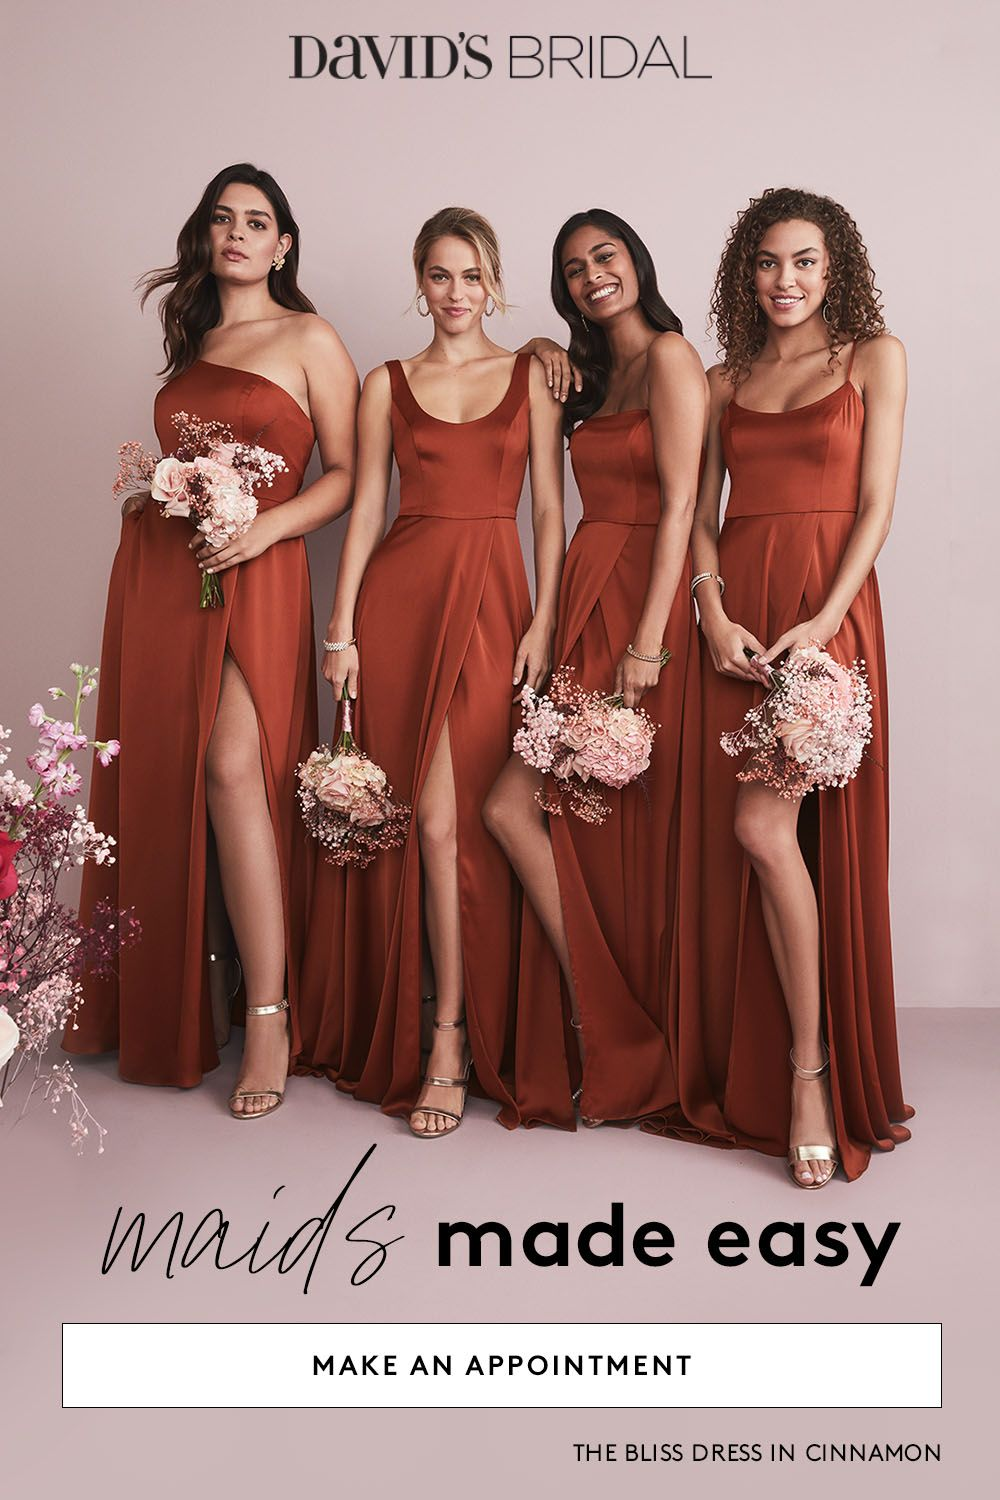 Coordinating Your Wedding Party Is A Snap At David S Bridal Our New Mix And Match Dresses Are Designe Wedding Bridesmaid Dresses Bridesmaid Bridesmaid Dresses